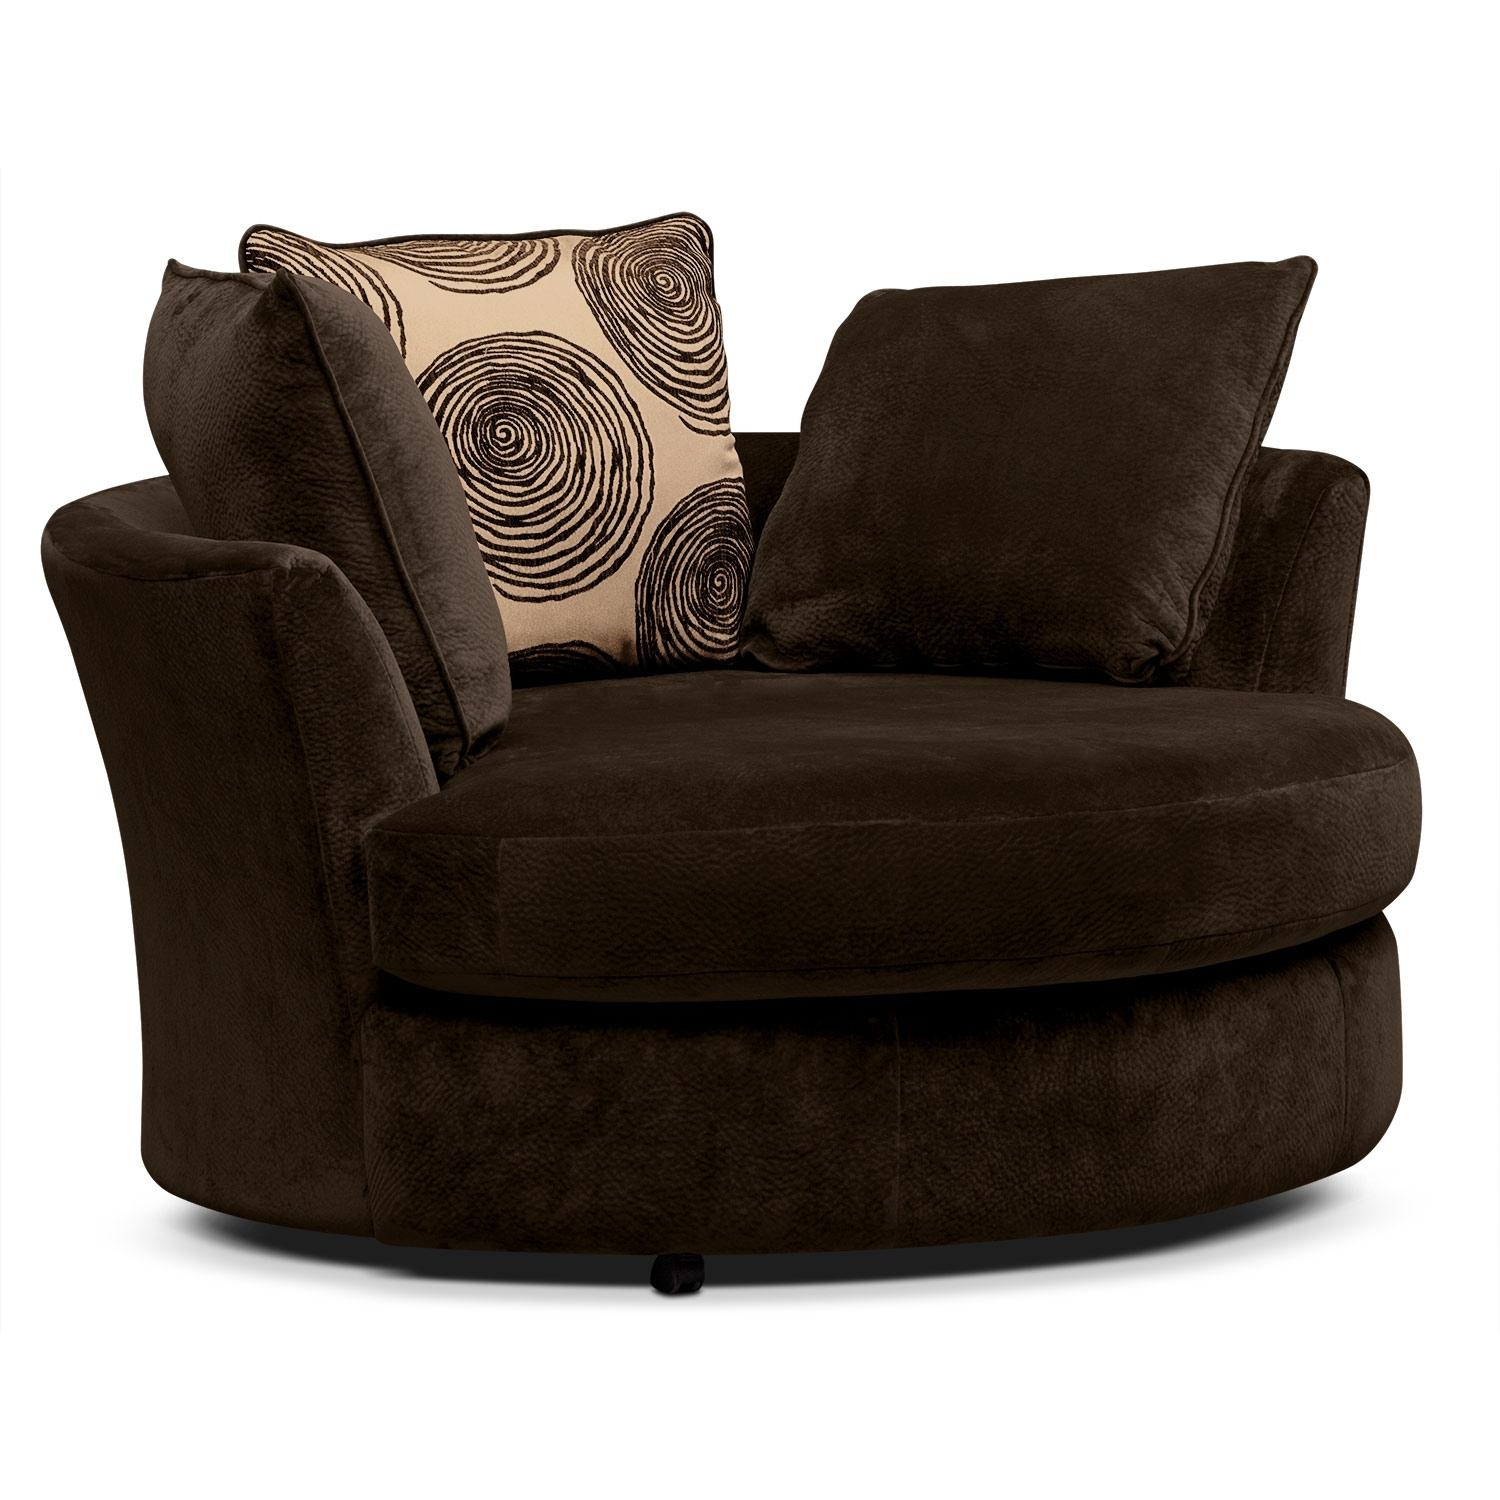 Round Sofa Chair Living Room Furniture | Raya Furniture Regarding Round Sofa Chair Living Room Furniture (Image 12 of 20)